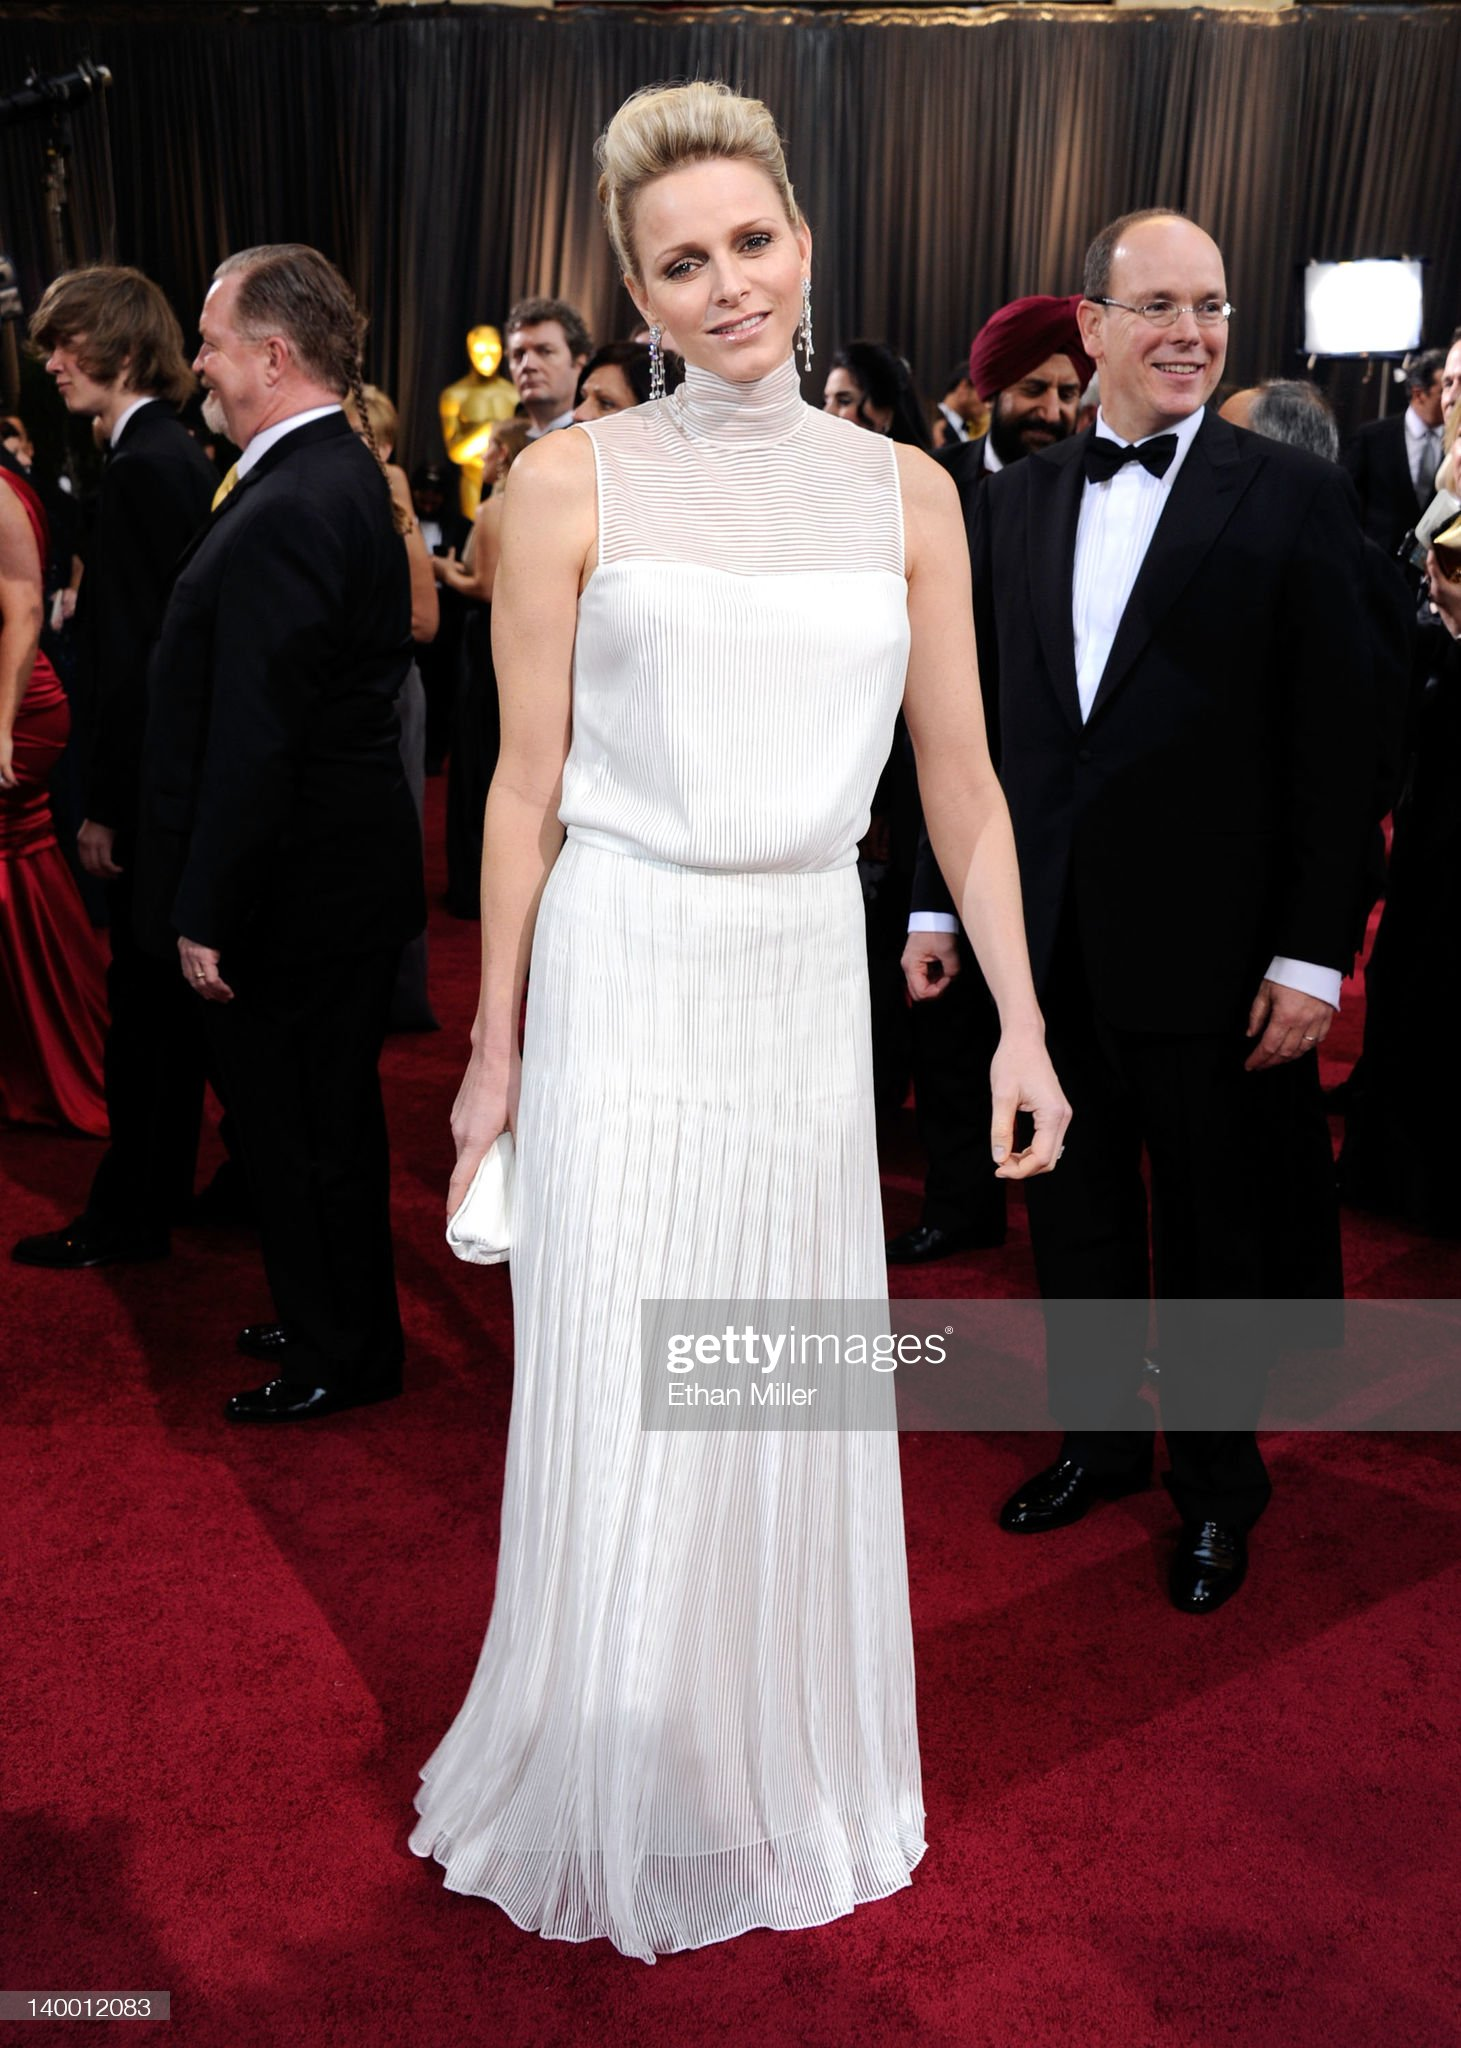 84th Annual Academy Awards - Arrivals : News Photo